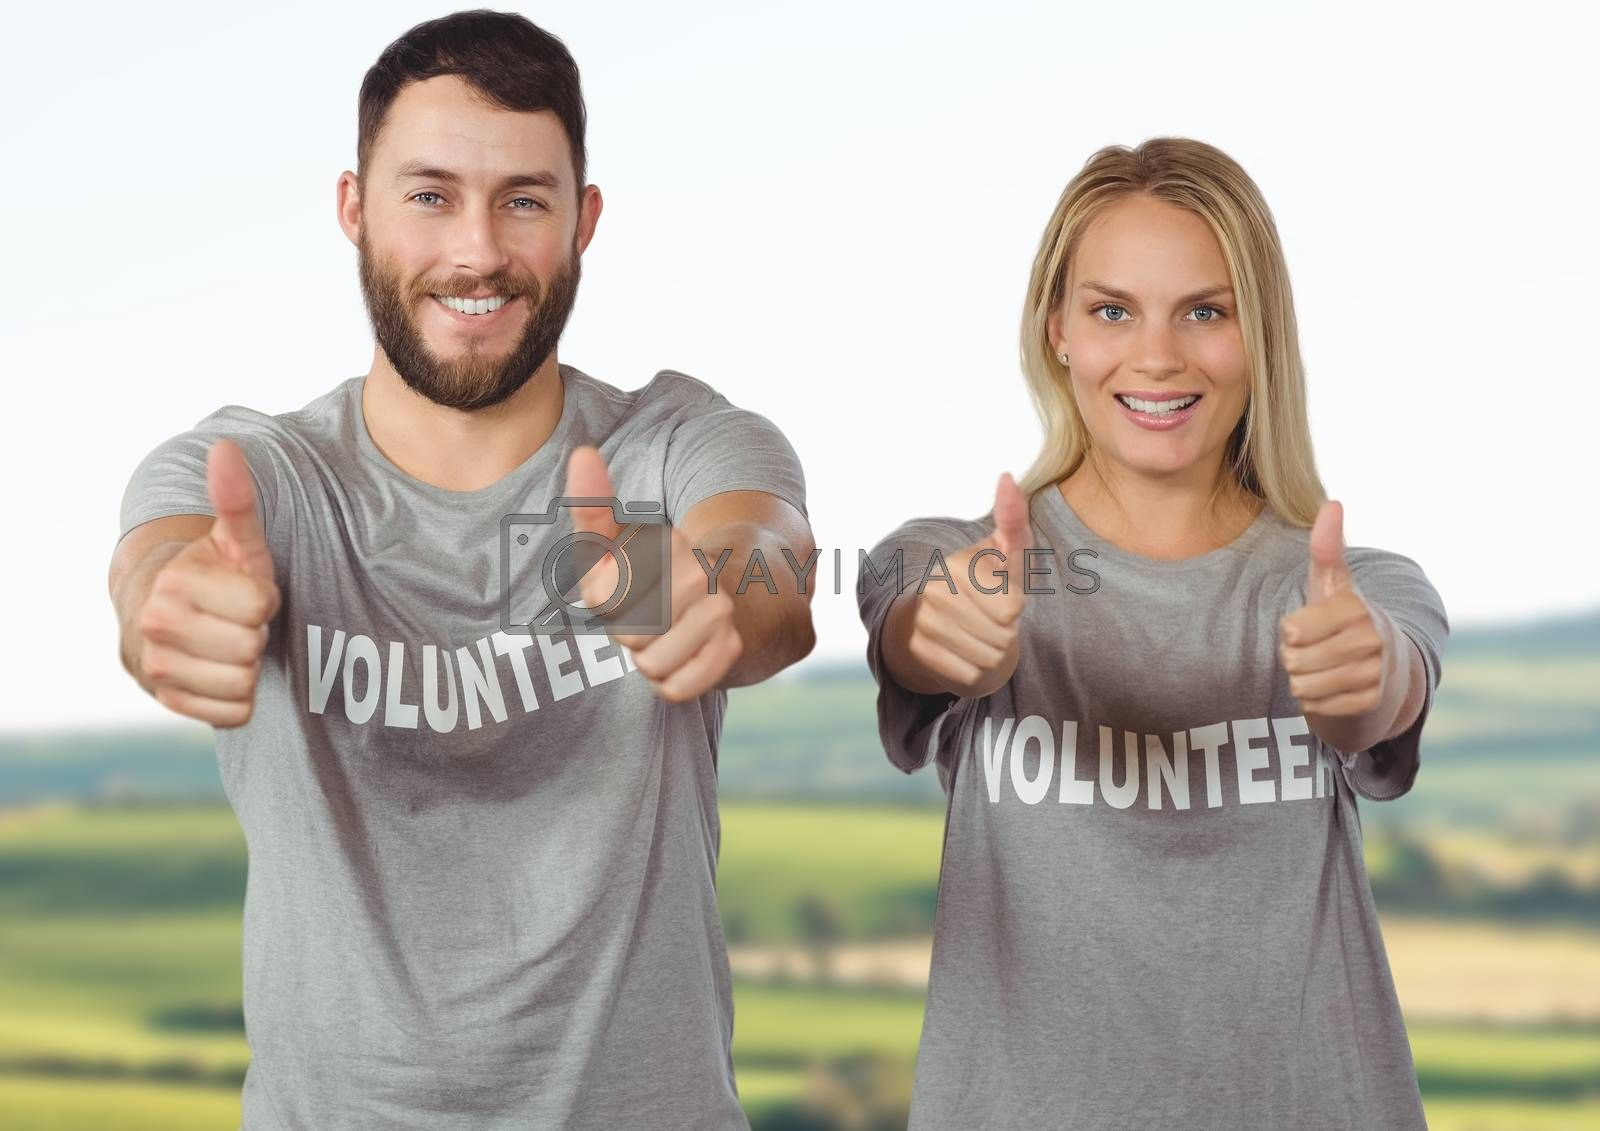 Digital Composite of Couple of volunteer thumb up against landscape background